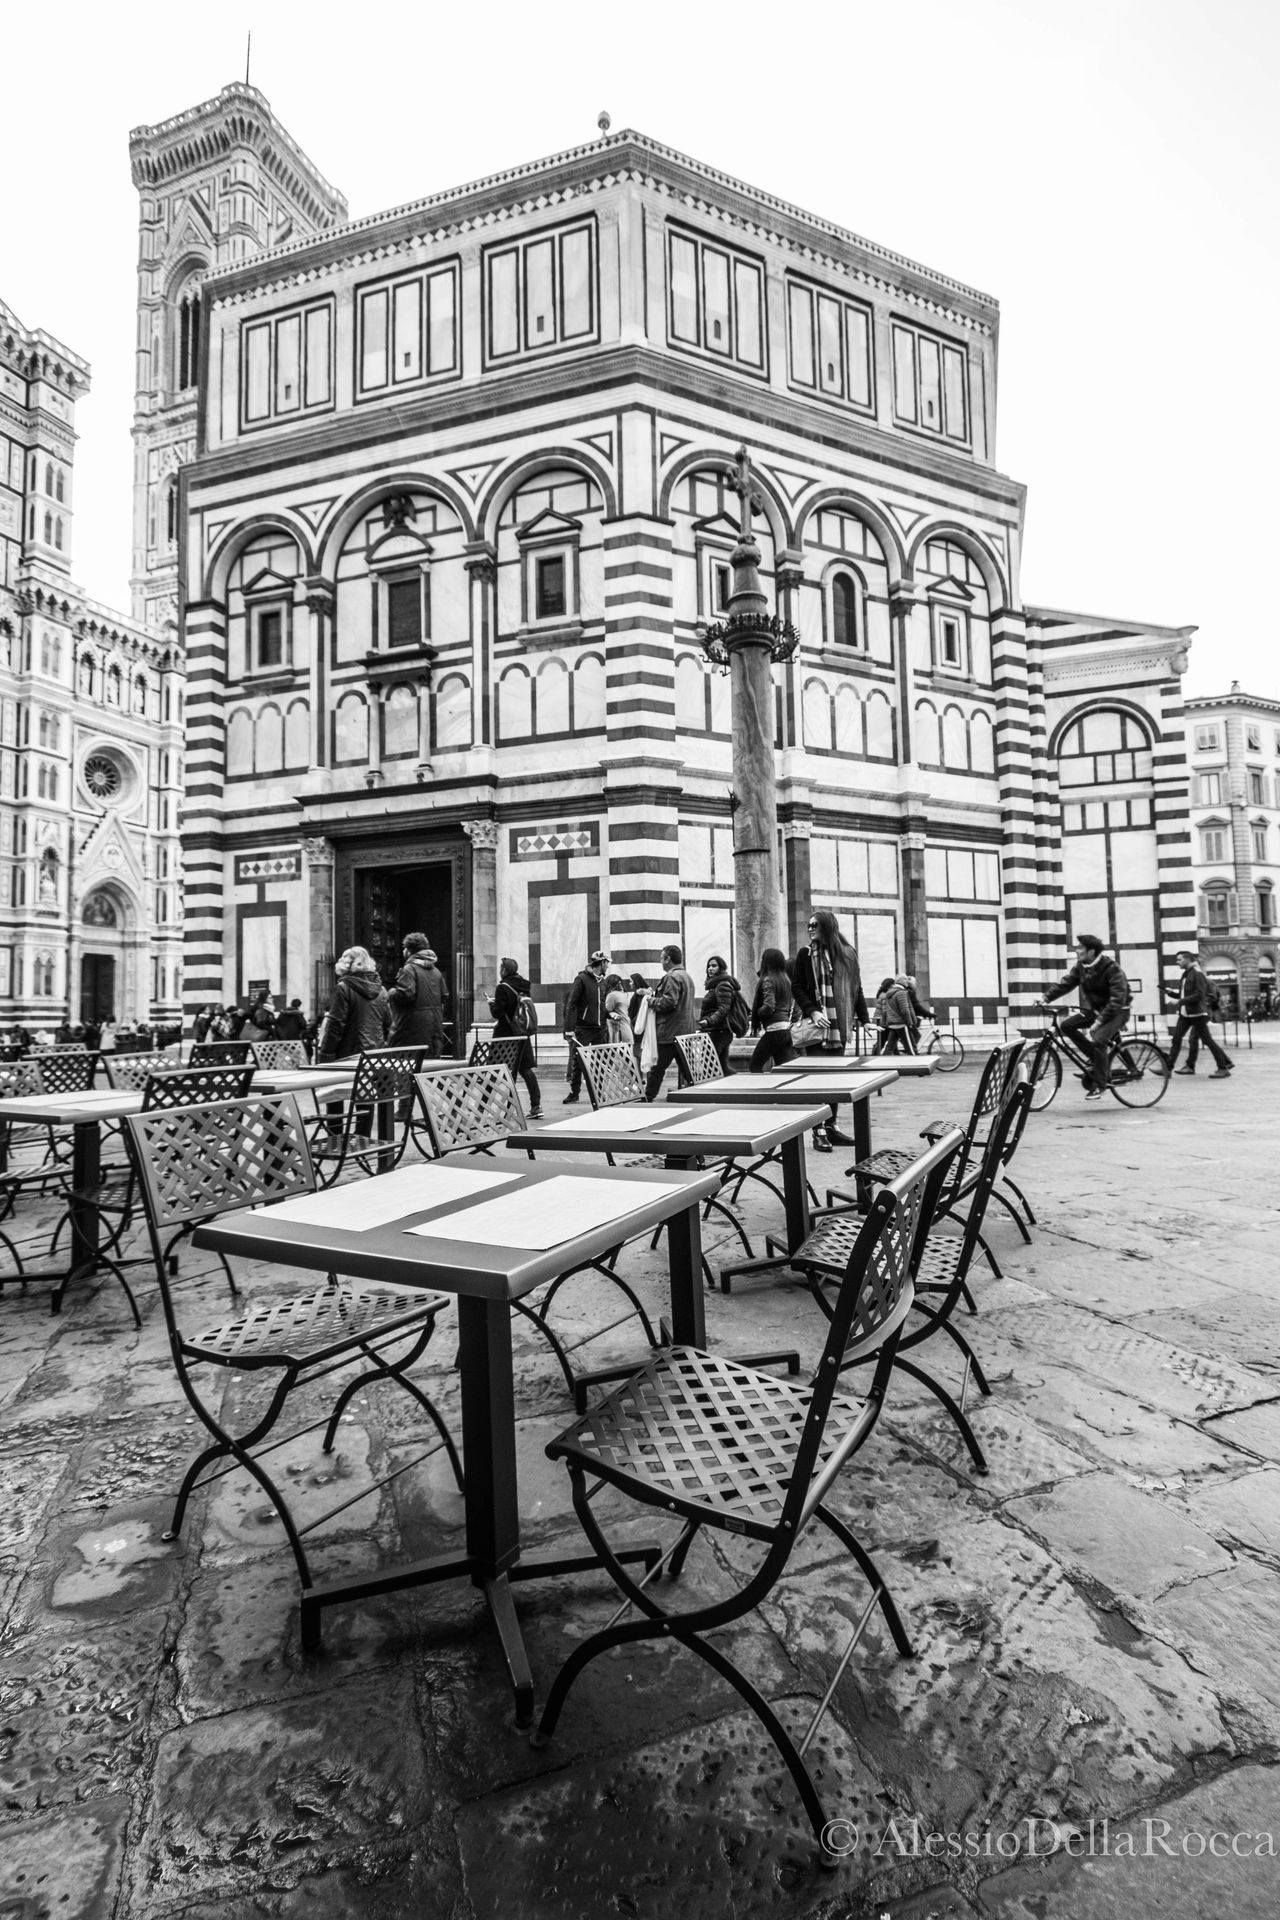 Architecture Battistero Di Firenze Battisterodisangiovanni Blackandwhite Building Exterior City Contrast Florence Florence Italy Streetphotography Table Tables And Chairs